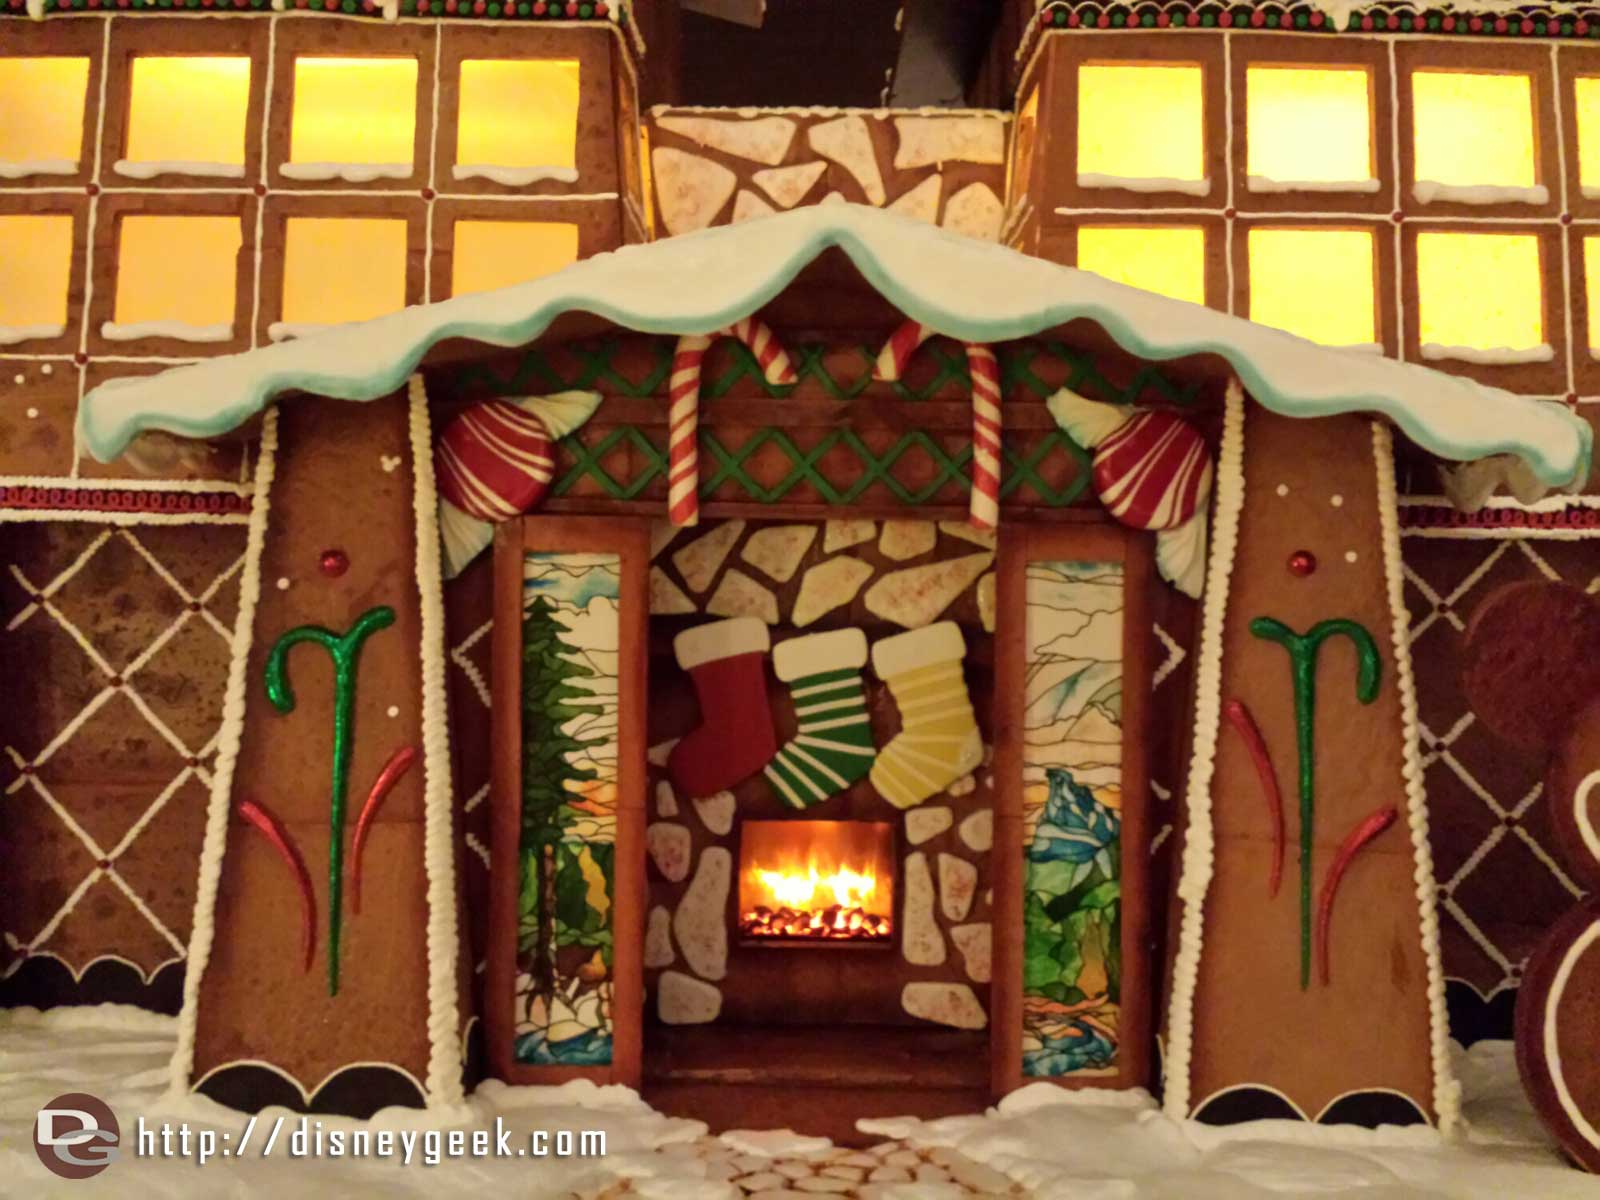 A closer look at the entrance to the gingerbread hotel in the Grand Californian lobby